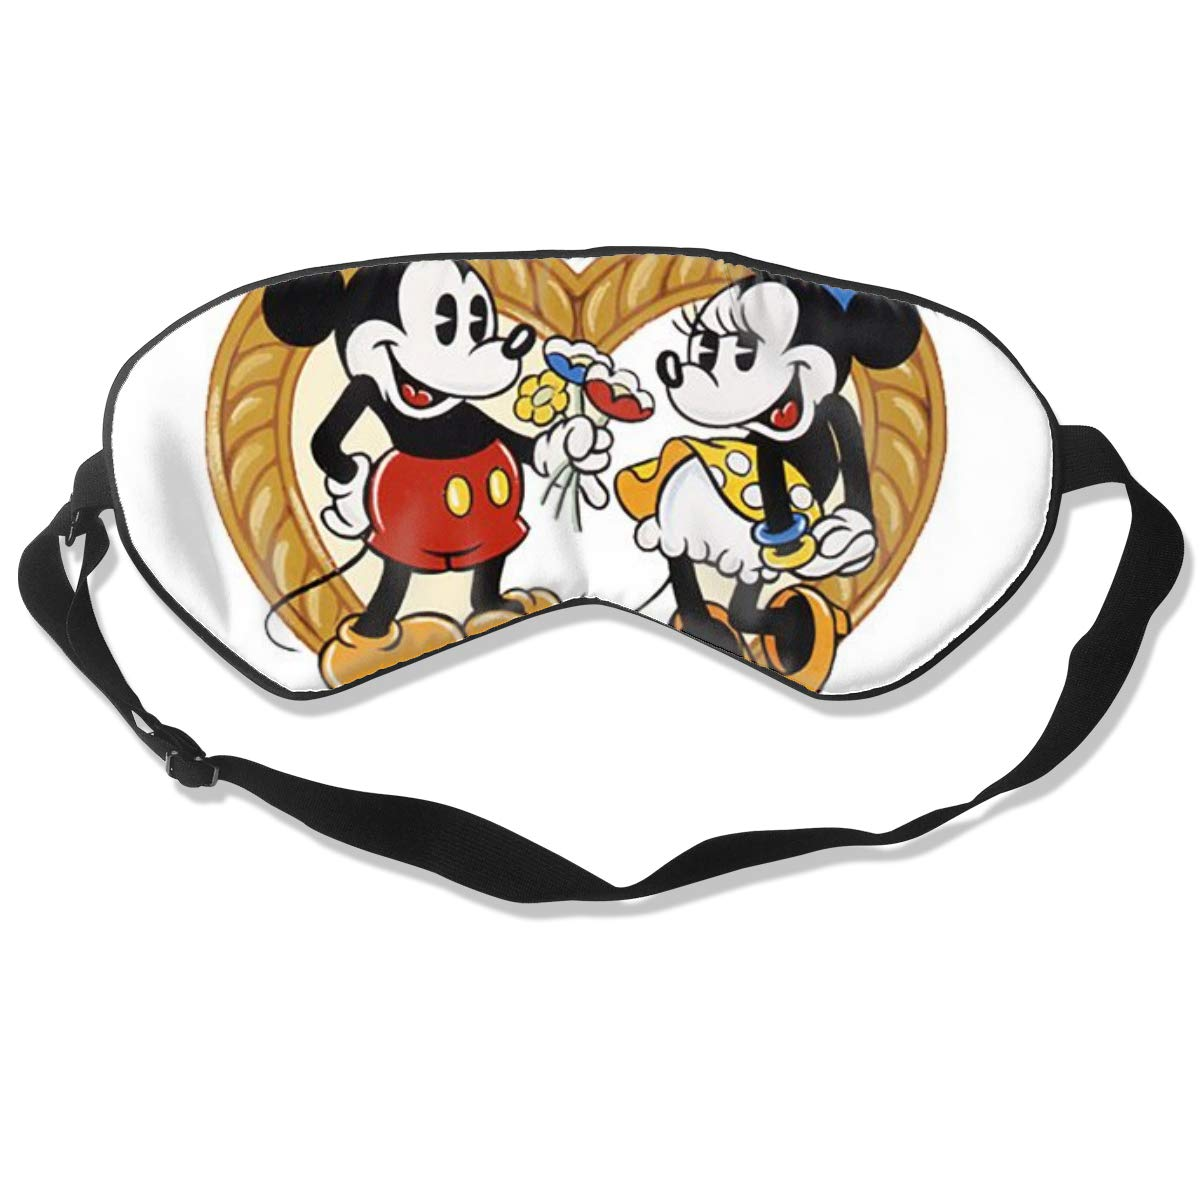 JINUNNU Mulberry Silk Sleep Mask and Blindfold Mickey Love Minnie Comfortable and Super Smooth Eye Mask with Adjustable Strap